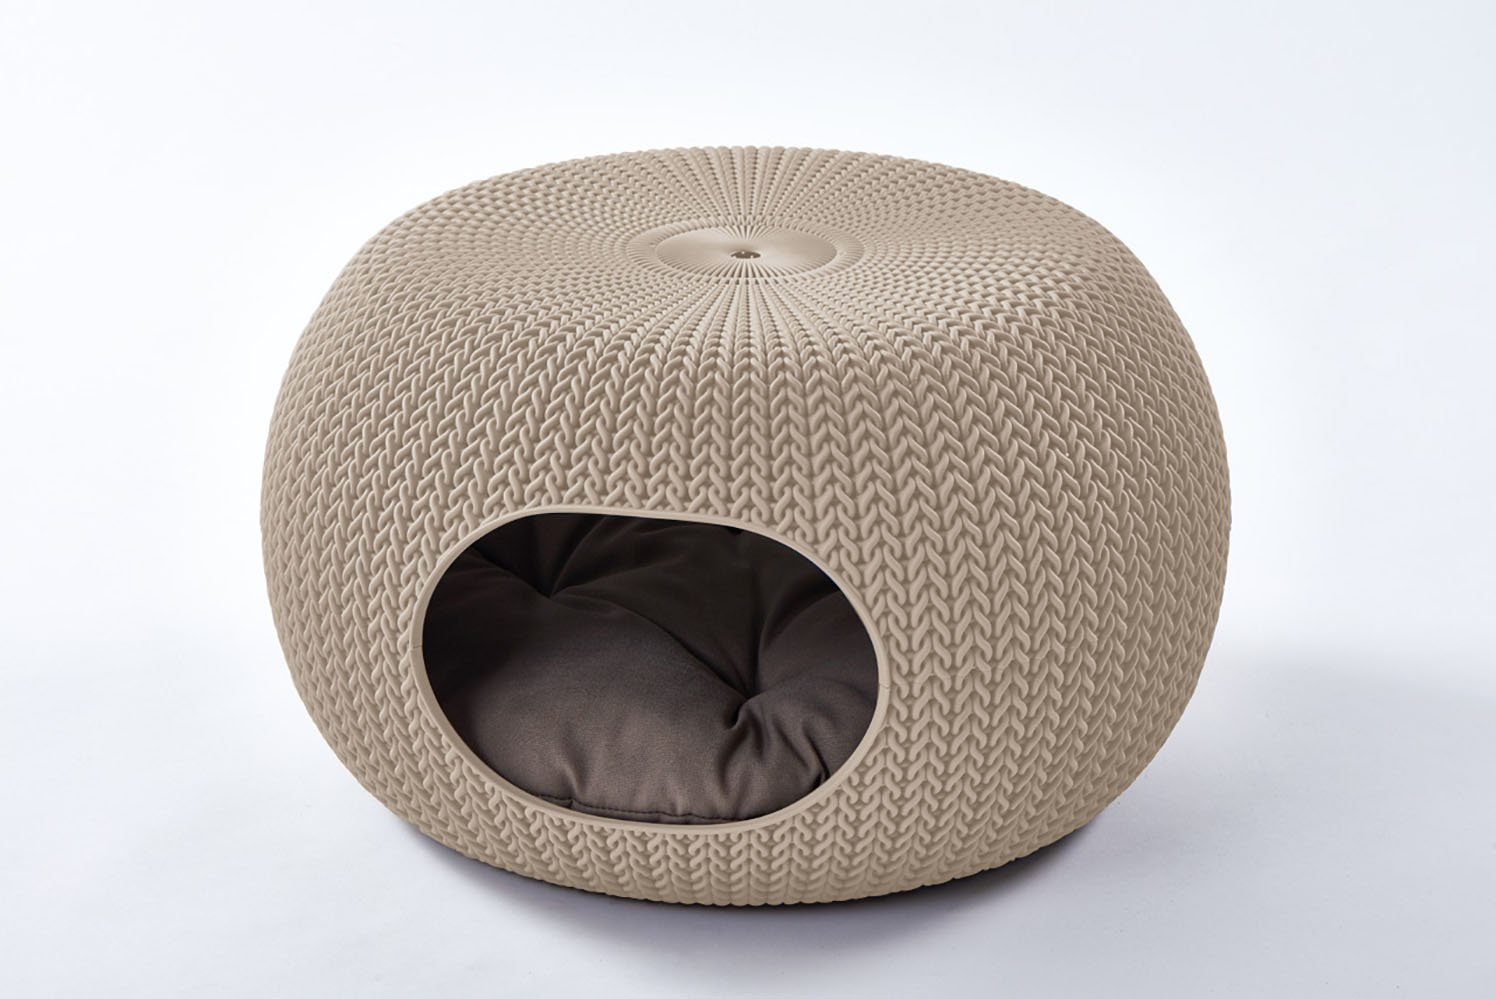 Keter by Curver 22.7'' x 22.3'' x 13'' KNIT Cozy Luxury Lounge Bed & Pet Home with Cushions, Small to Medium